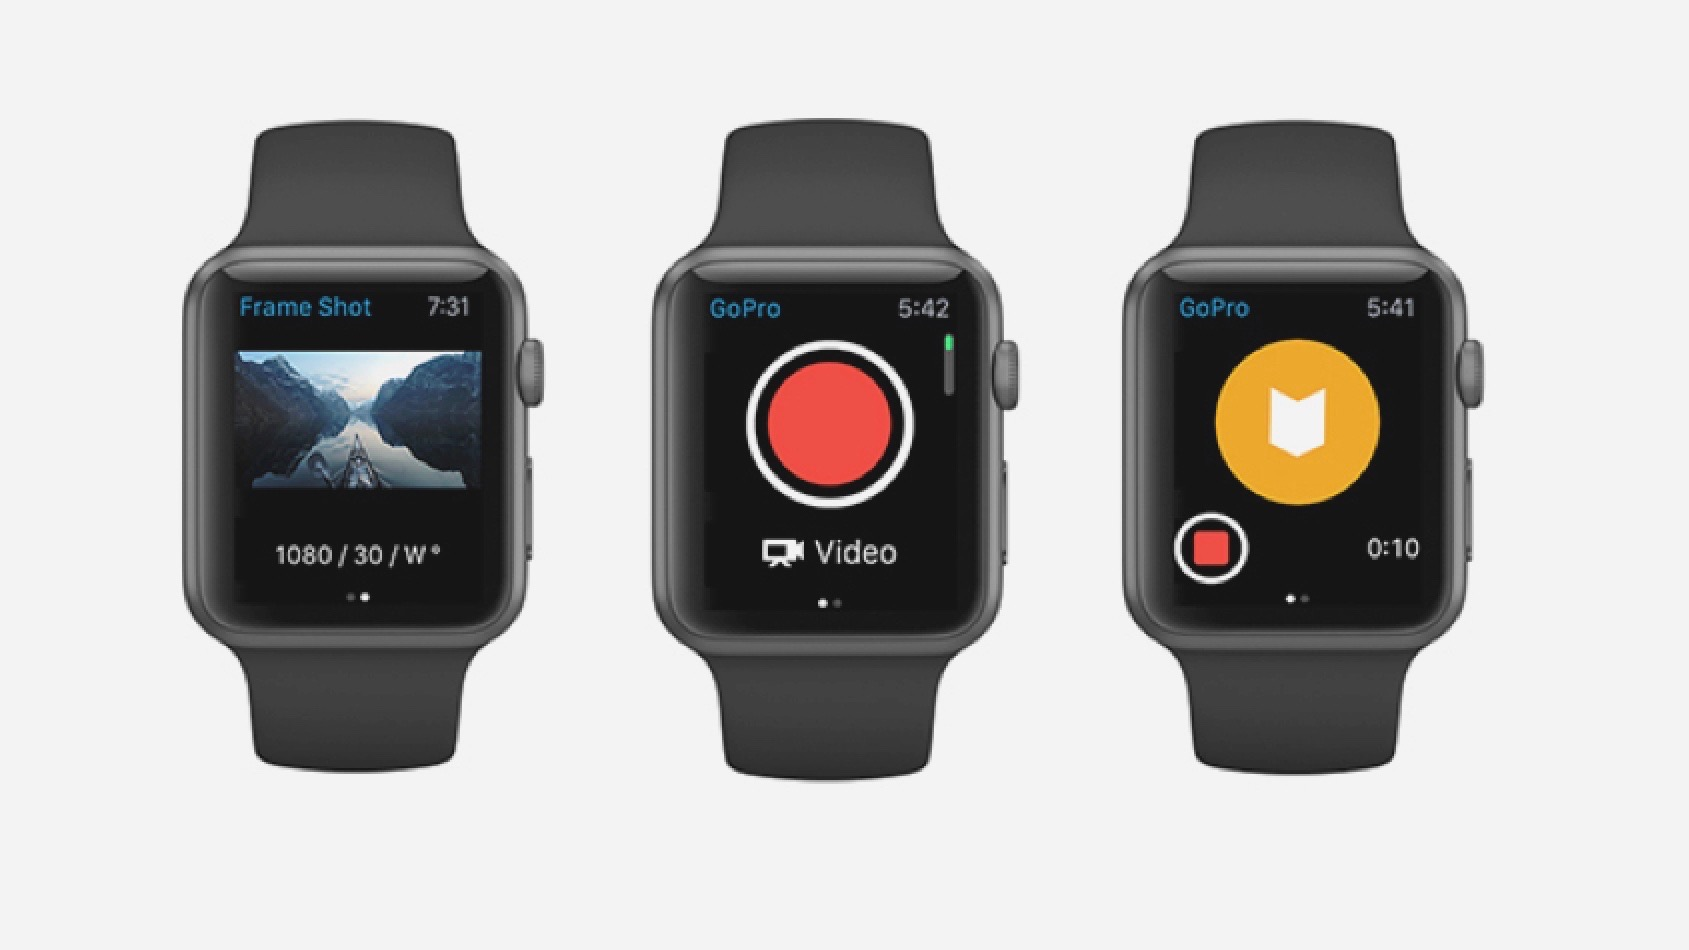 GoPro's Apple Watch app is live